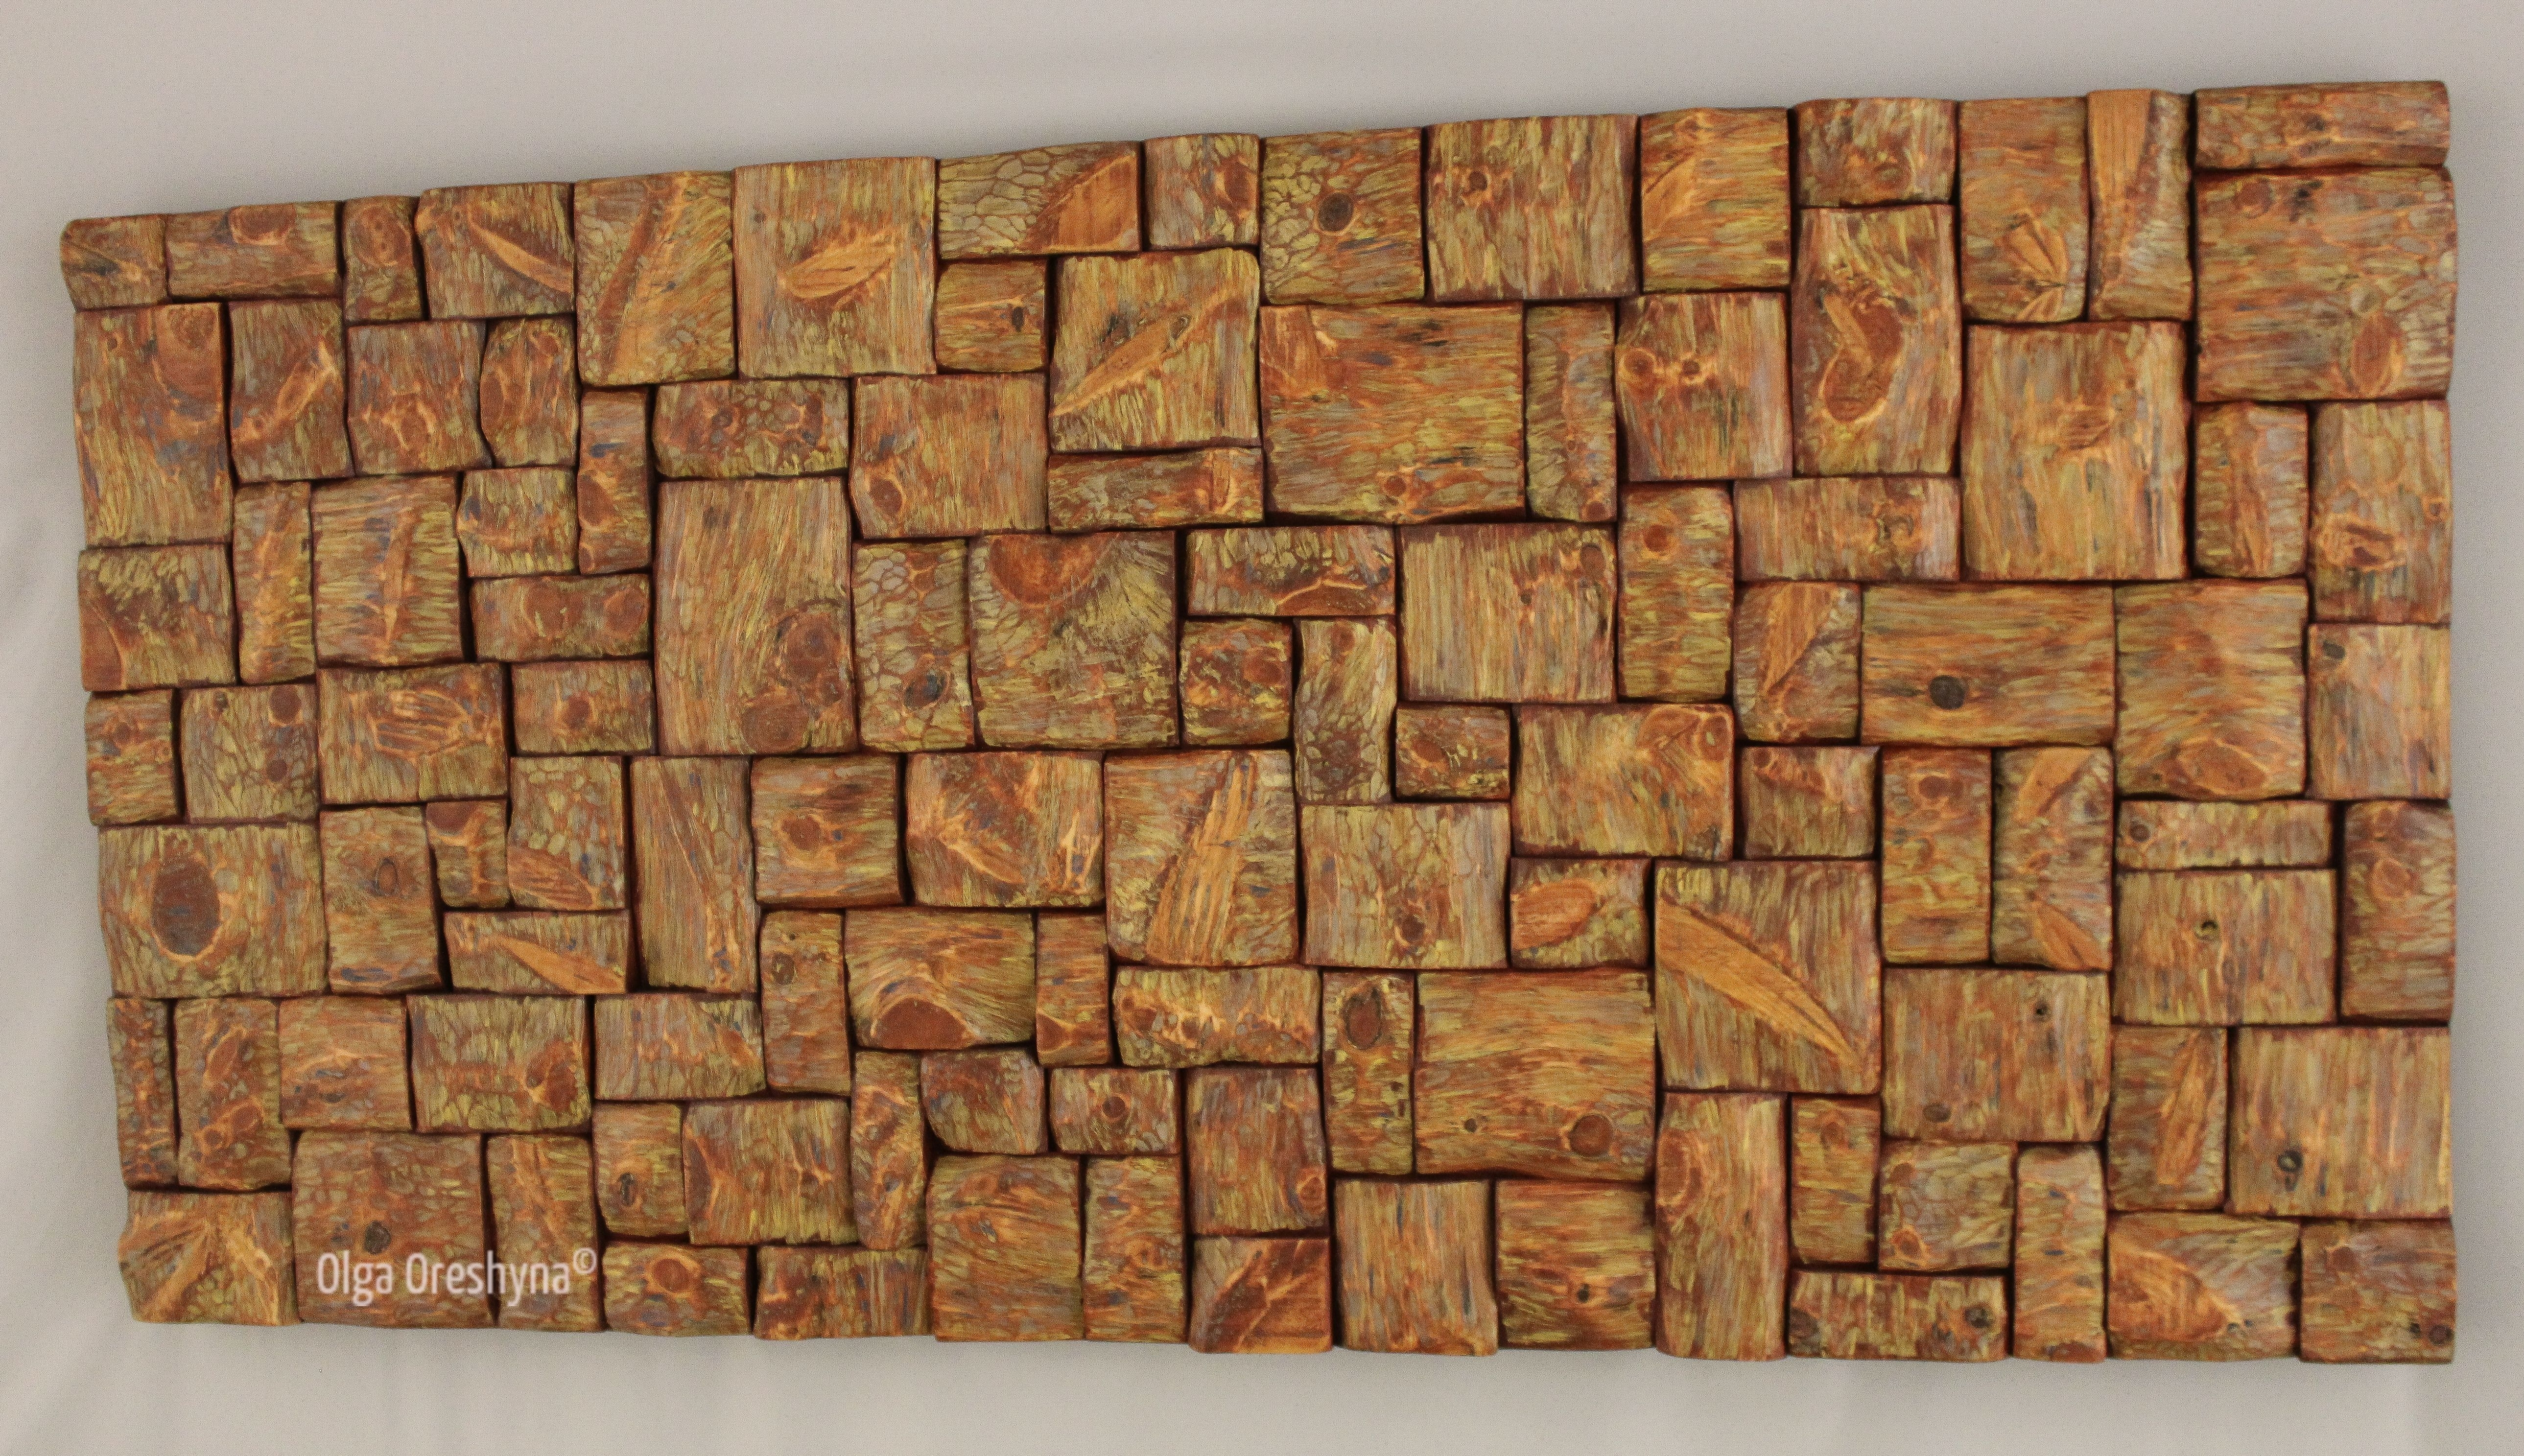 Wall Art Decor Ideas Artistic Hanging Wood Art Wall Reclaimed With Inside Most Up To Date Wood Art Wall (View 7 of 15)